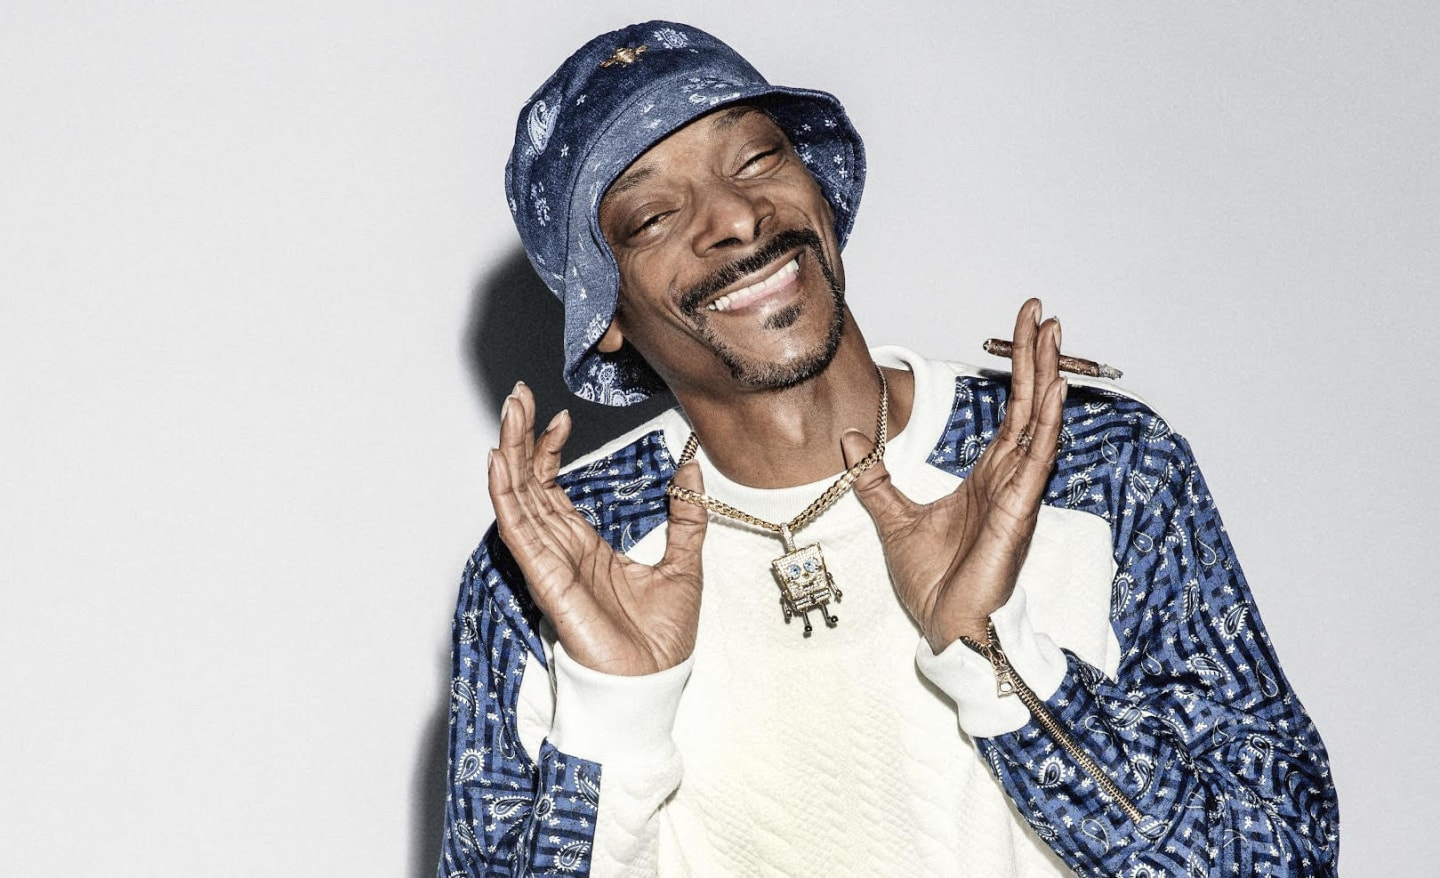 Snoop Dogg Is The 'Sexiest Man Alive'